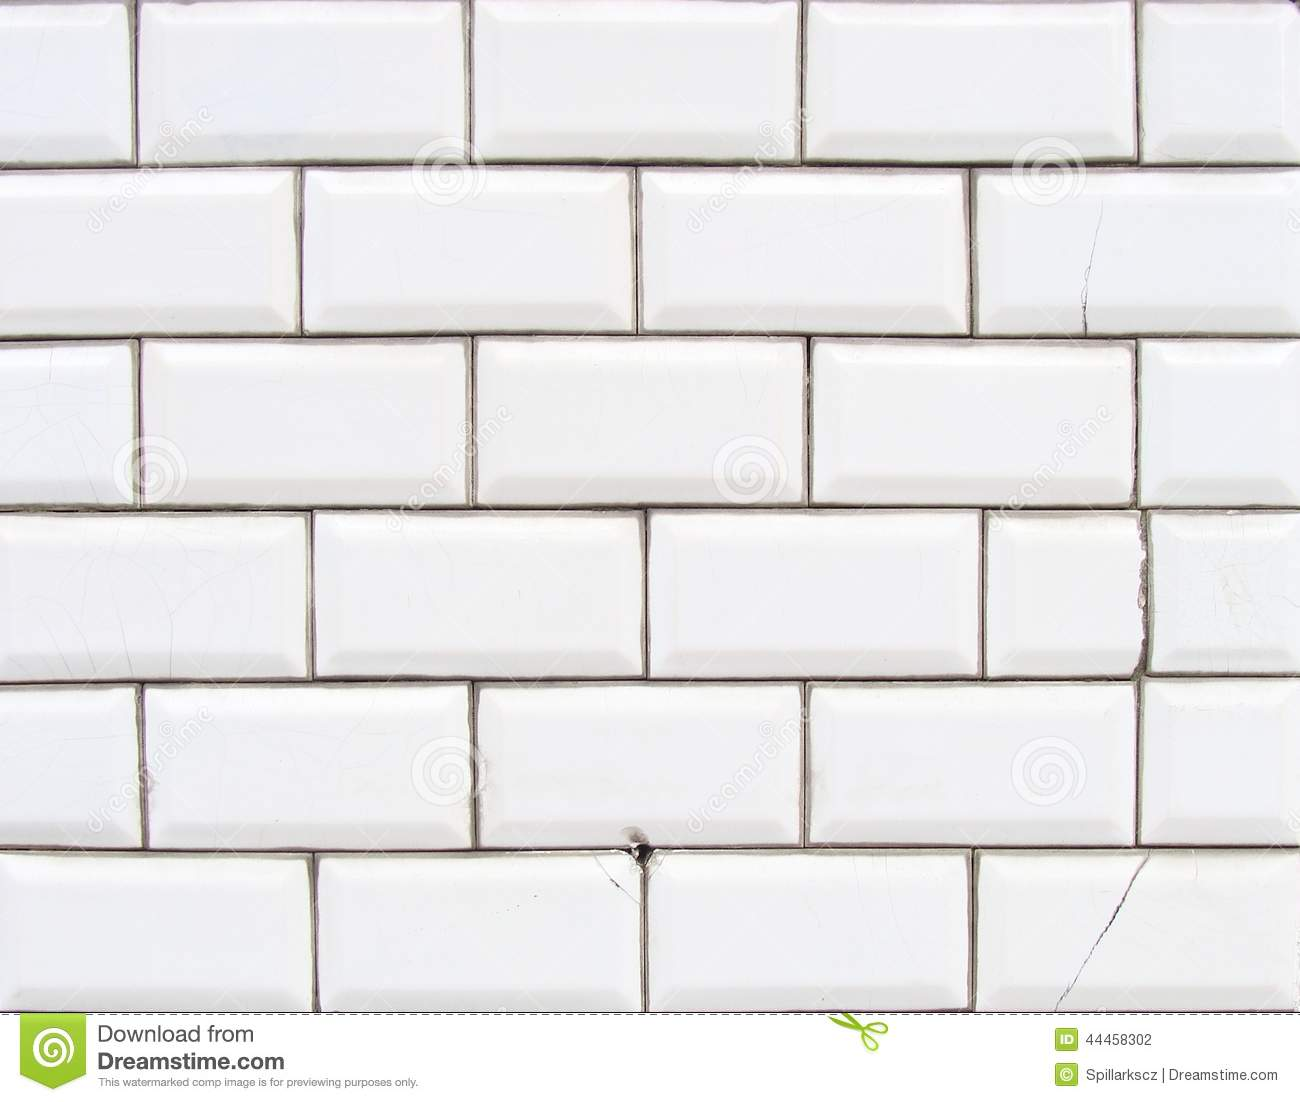 Detail Of A Glossy White Beveled Tile Wall With Damage